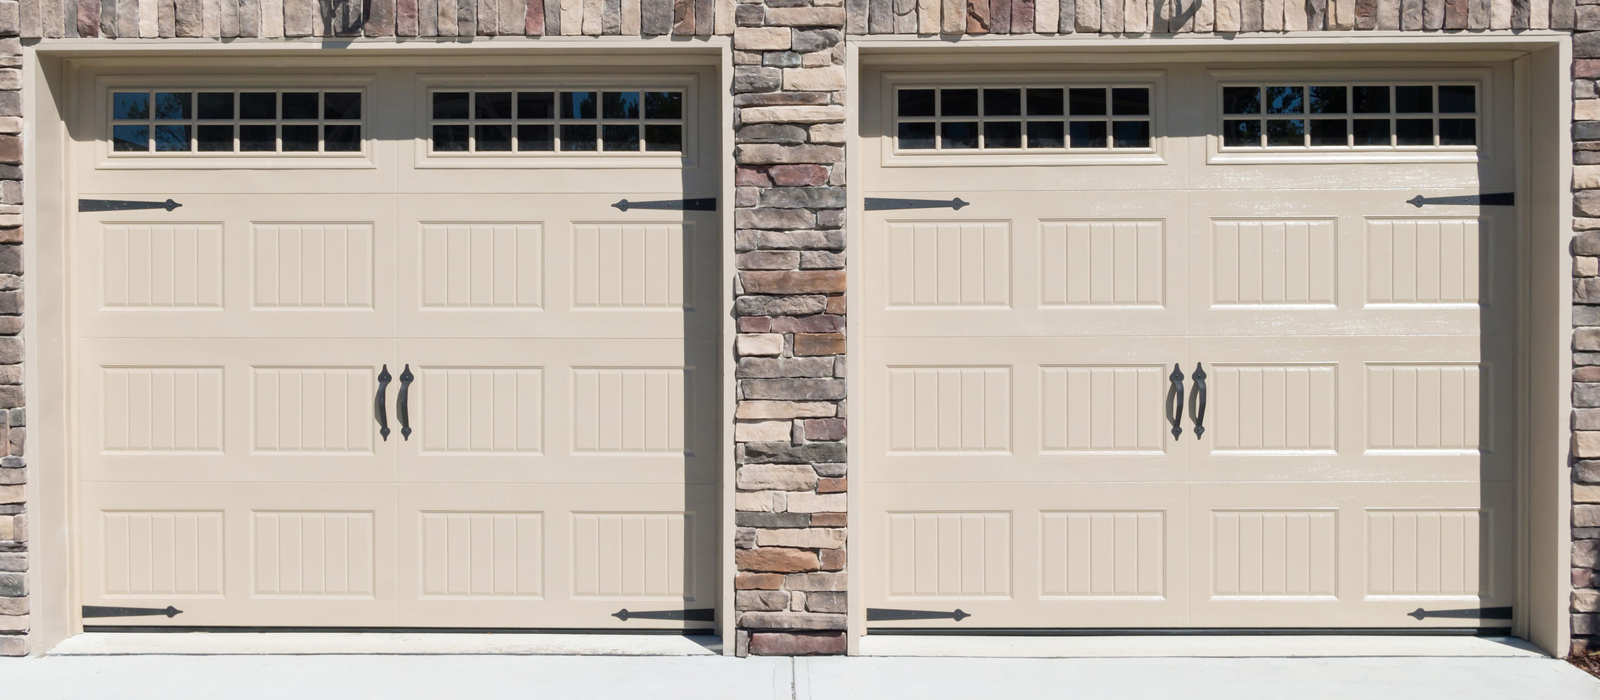 Garage Door Parts Seattle Garage Door Repair Seattle Garage Door Repair Seattle Washington